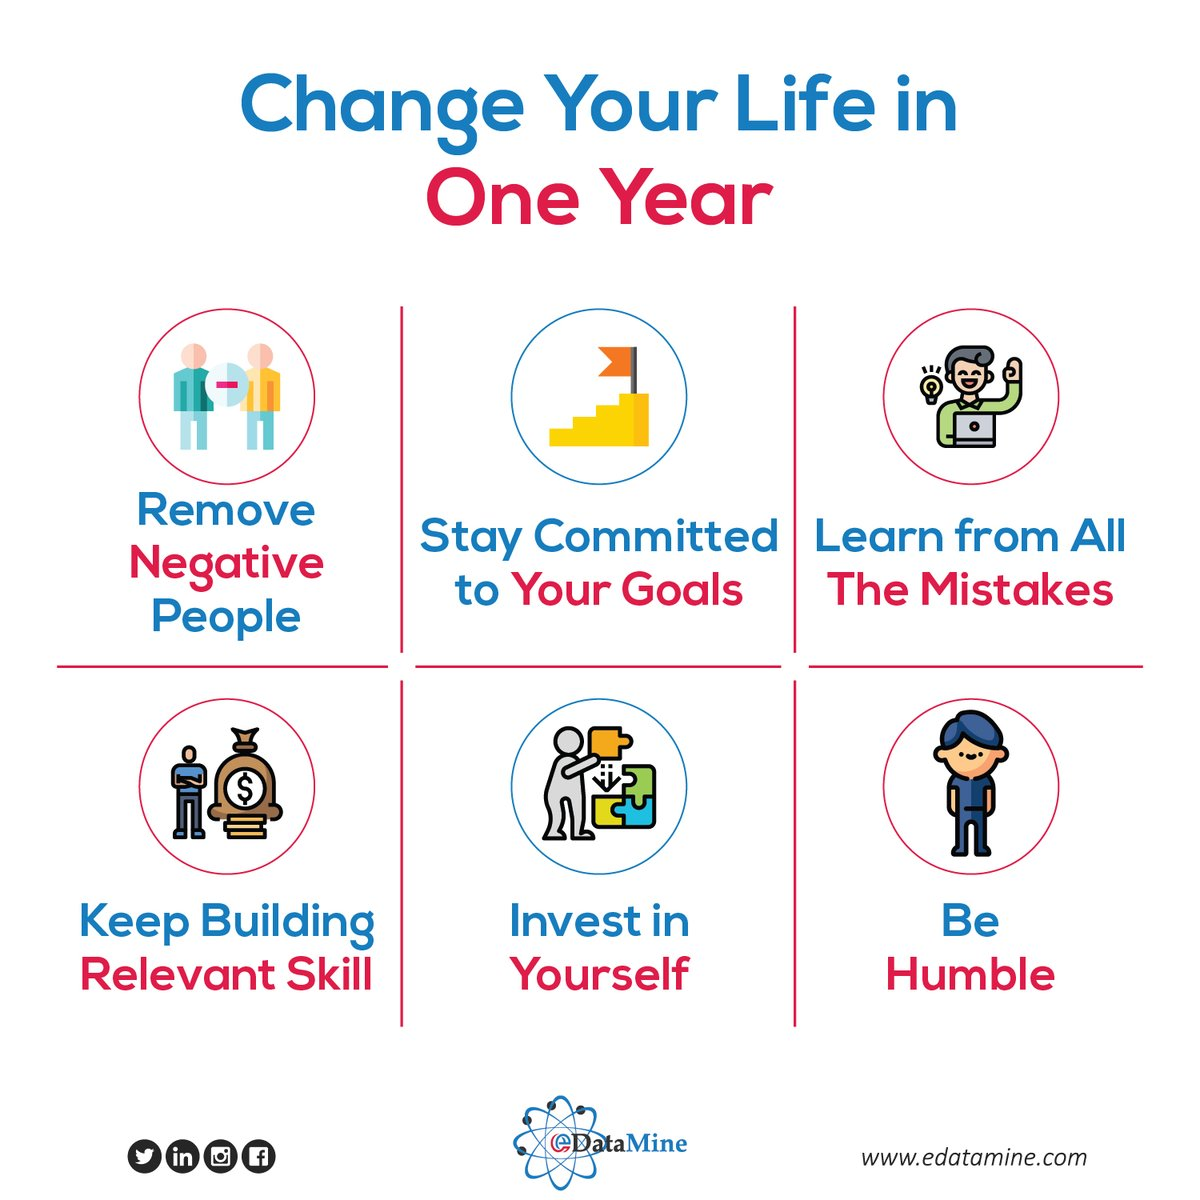 A lot can happen in a year, change it for the better by removing/doing these things.  #entrepreneurslife #businessminded #fearlessmotivation #mindsetshift #gogetter #businessadvice  #quotes4you #millionairementor #thinkandgrowrich  #billionairequotes #successdiaries #edataminepic.twitter.com/8LuWjqBtk2